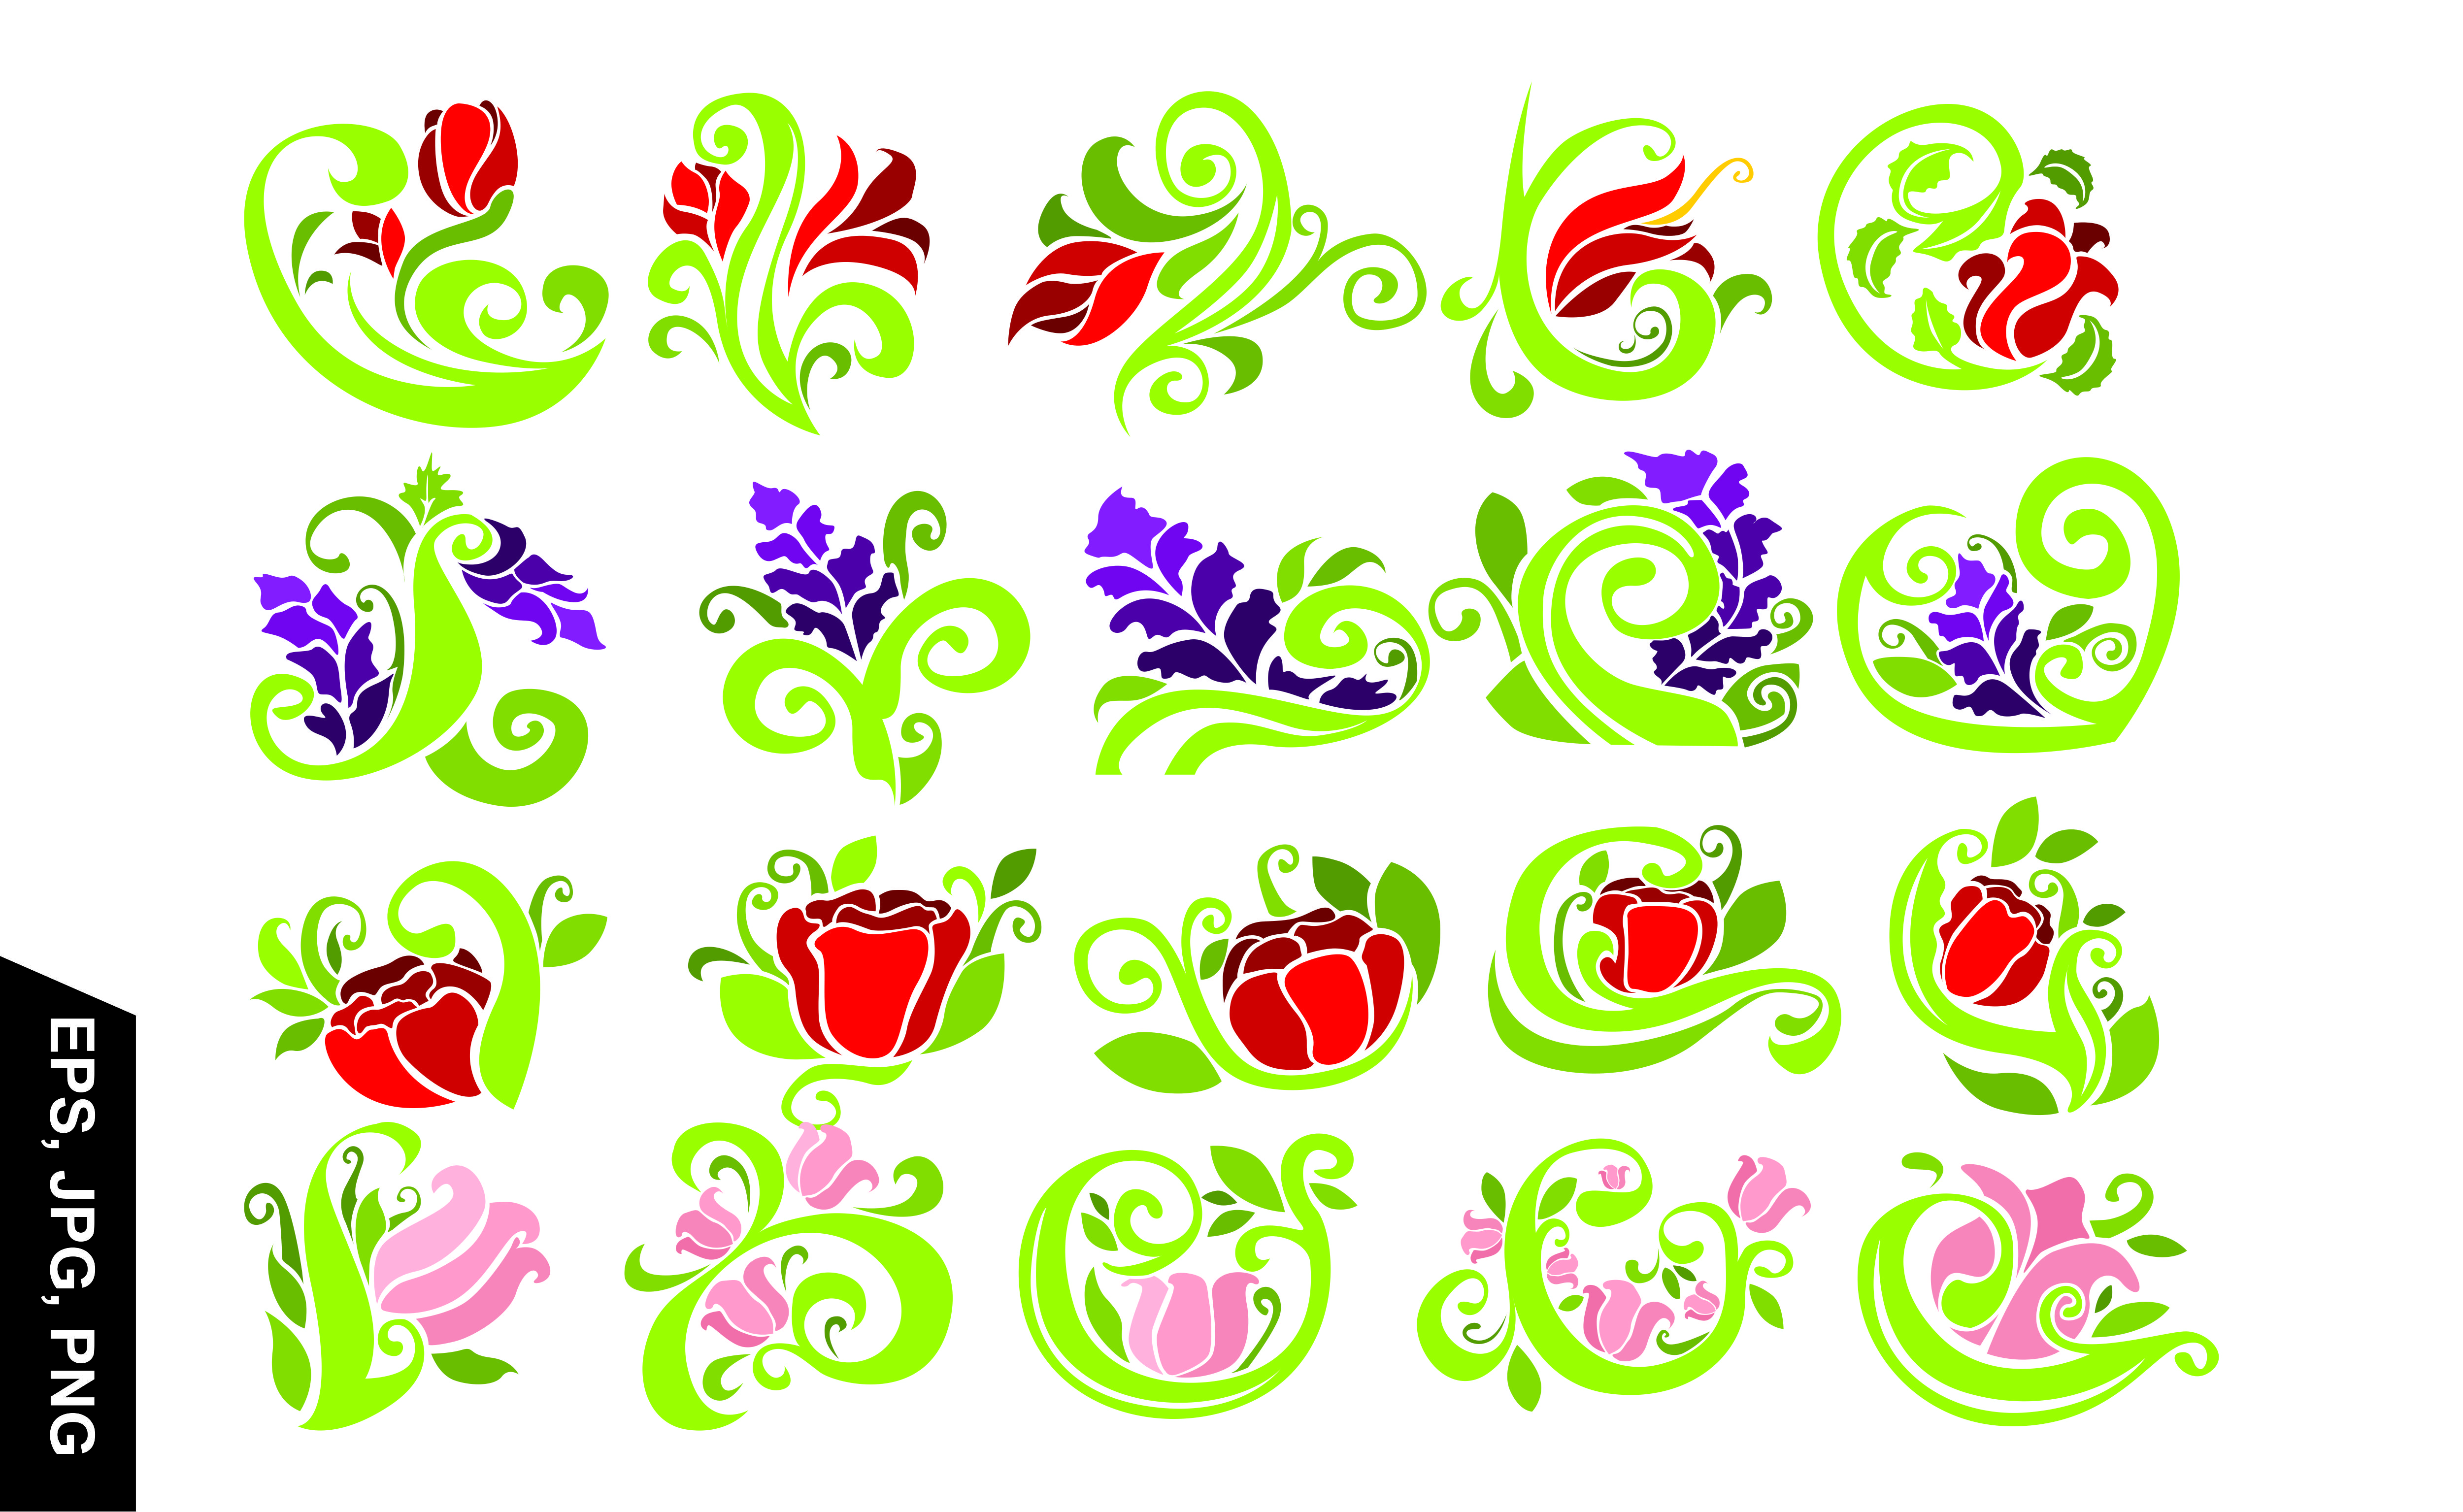 Download Free Floral Ornament With Flower Vector Set Graphic By Arief Sapta for Cricut Explore, Silhouette and other cutting machines.